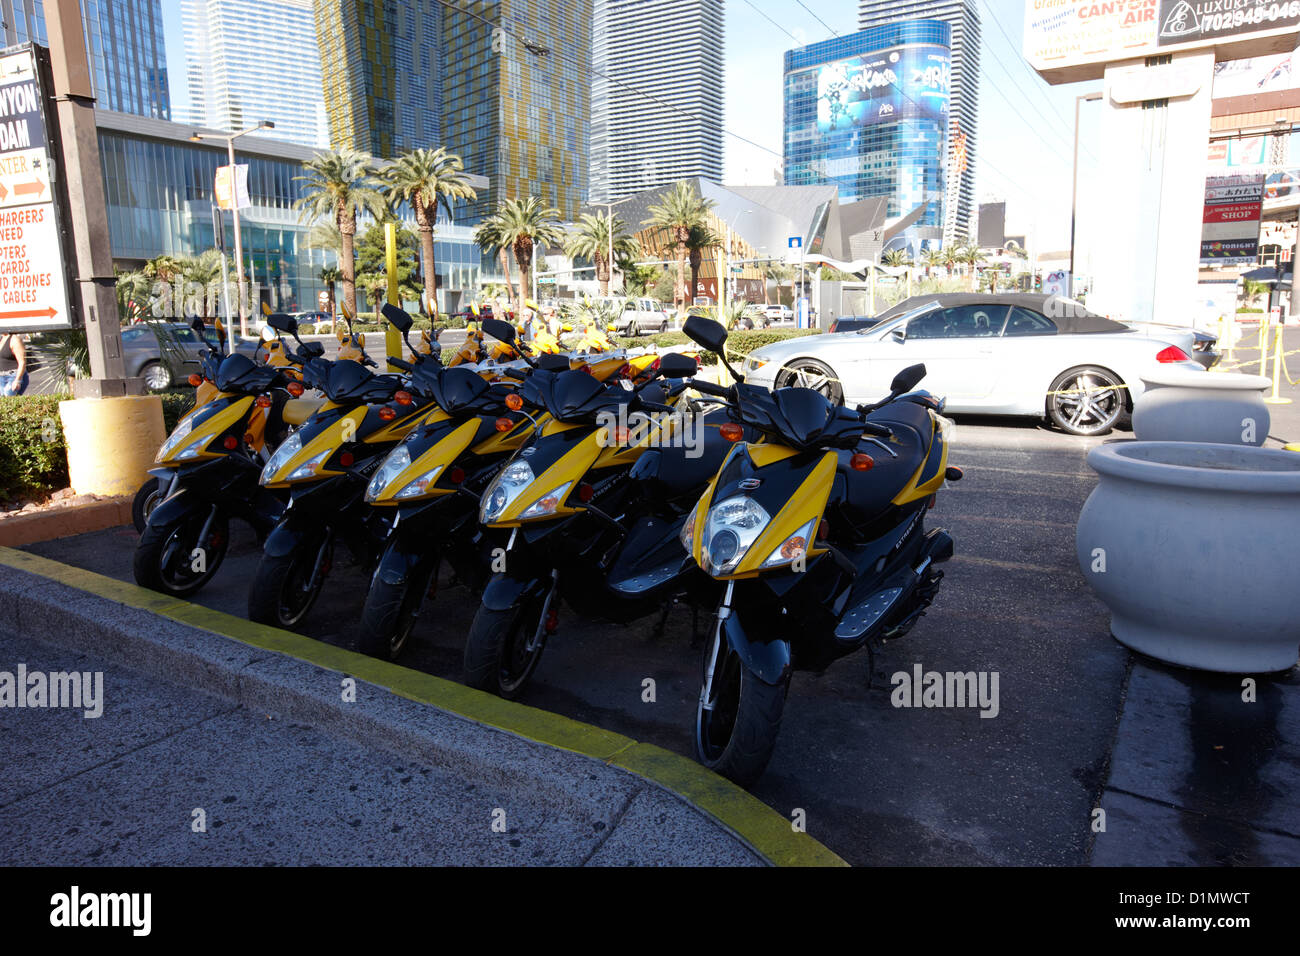 moto scooters for hire on Las Vegas boulevard Nevada USA - Stock Image